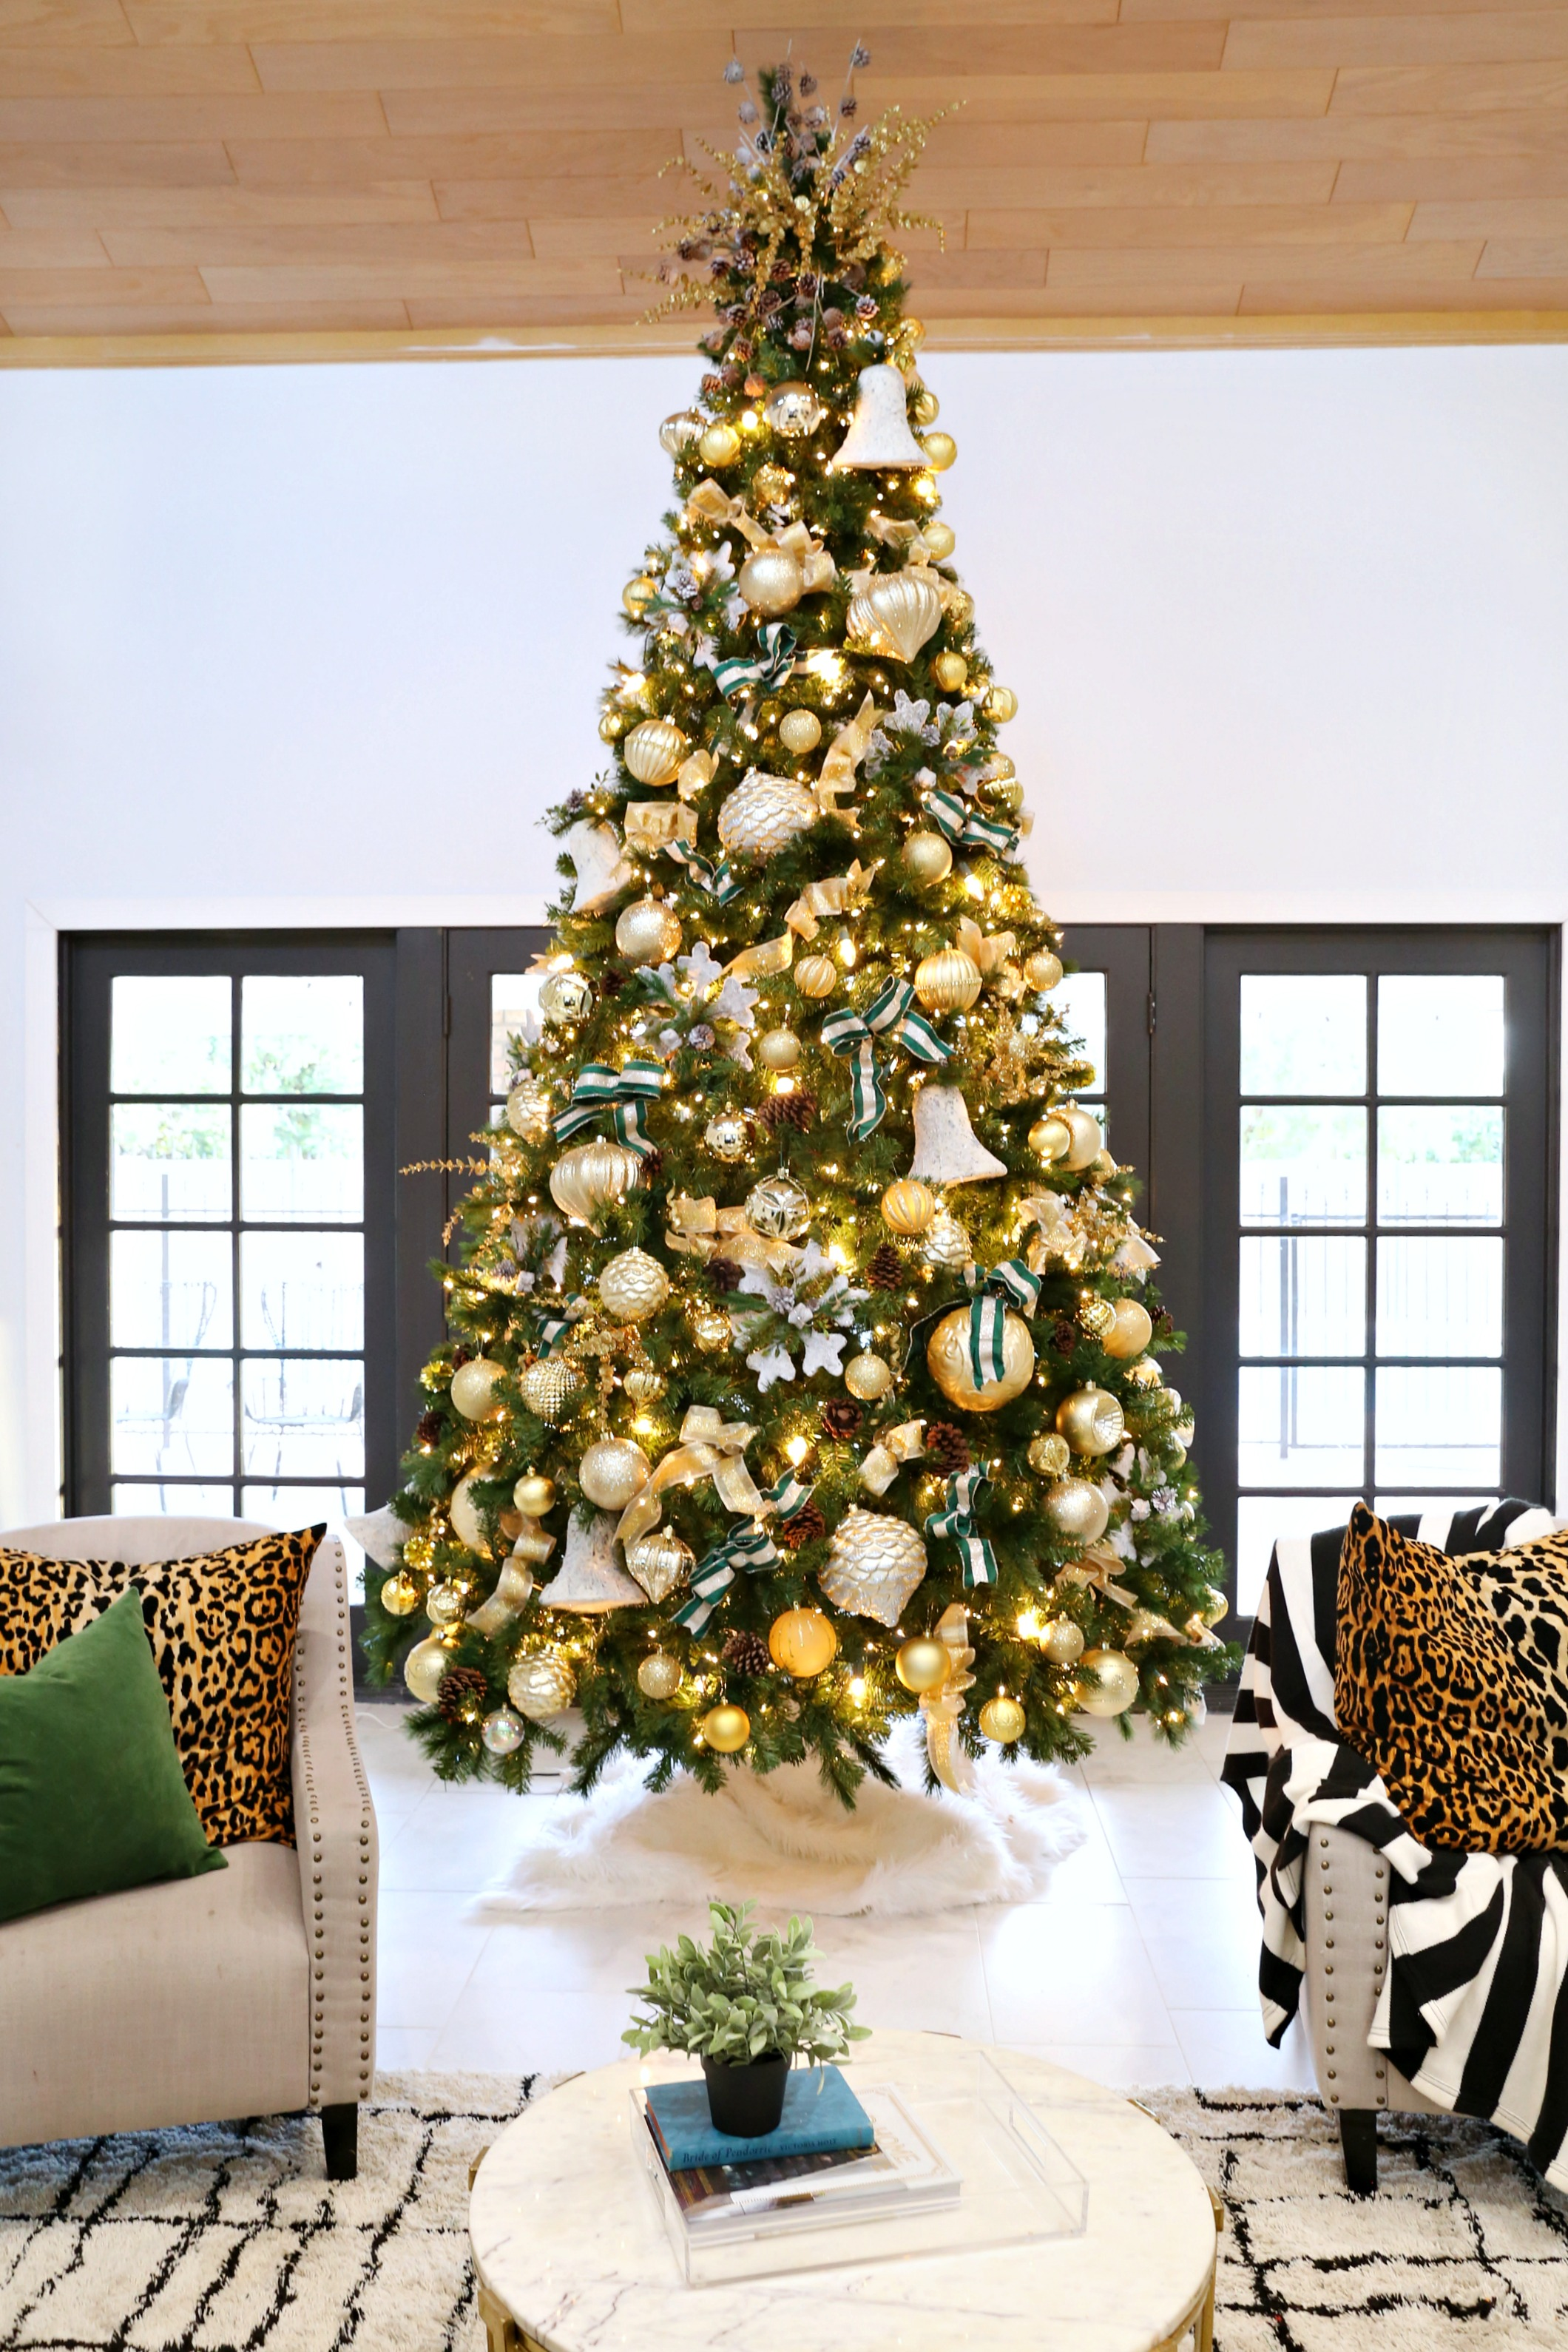 Christmas Tree Decorated.How To Decorate A Christmas Tree With The Home Depot